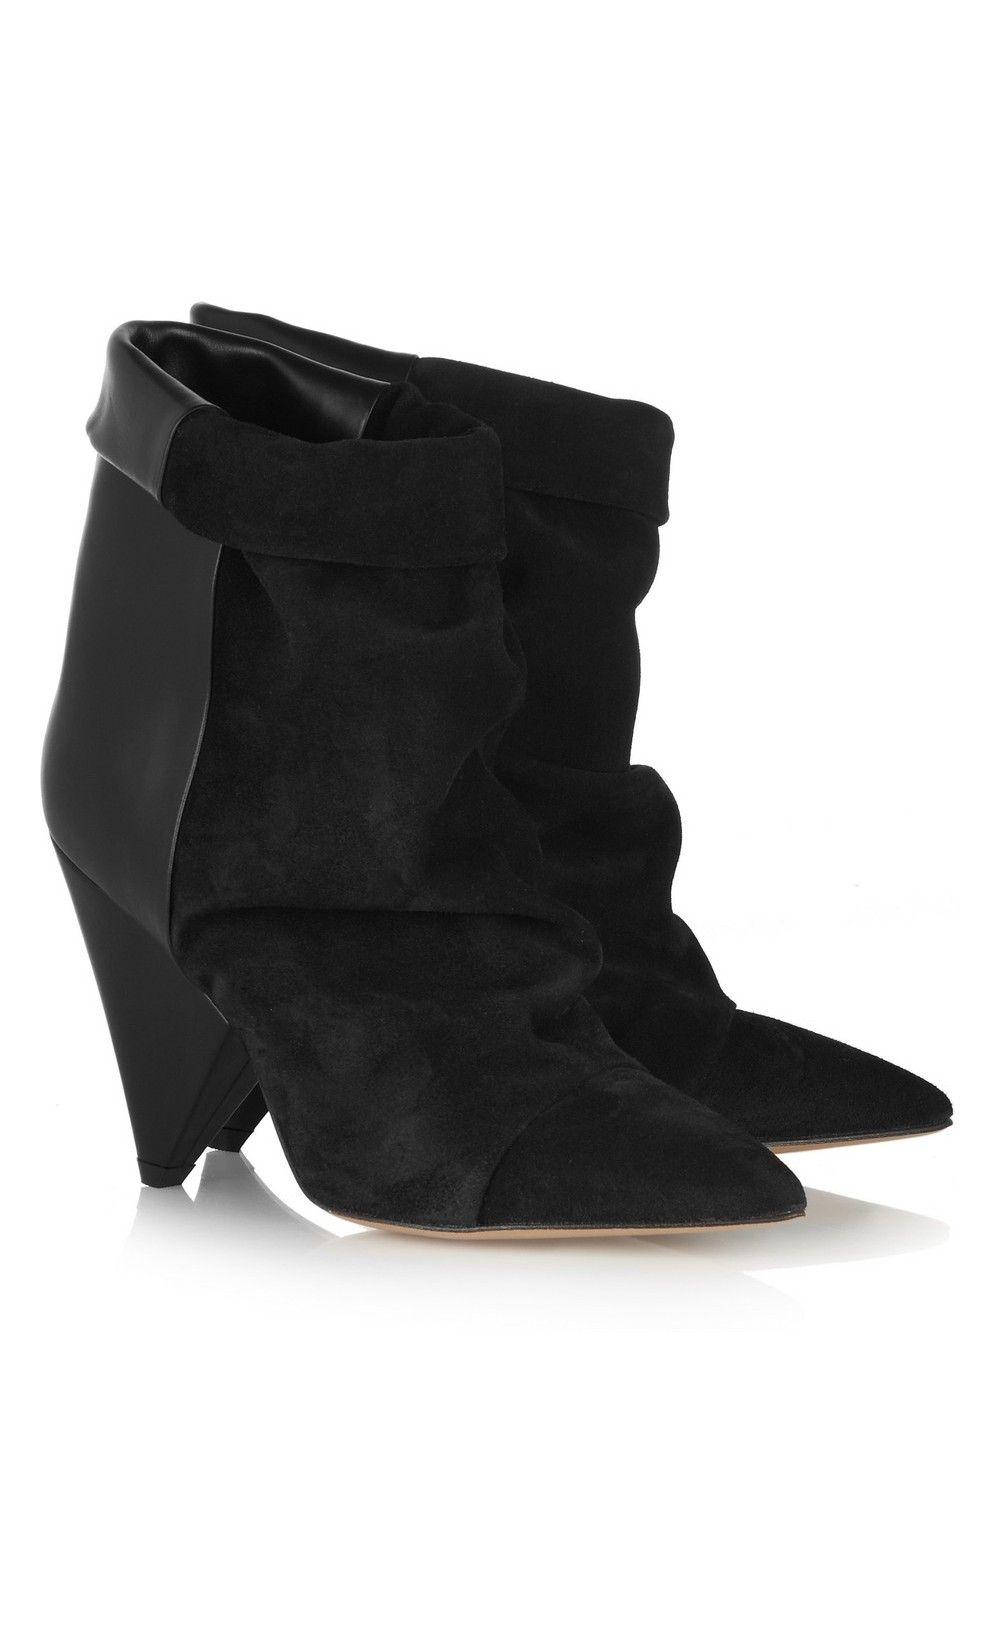 Isabel Marant Andrew Suede And Leather Ankle Boots Black Totryin2015 Damesmode